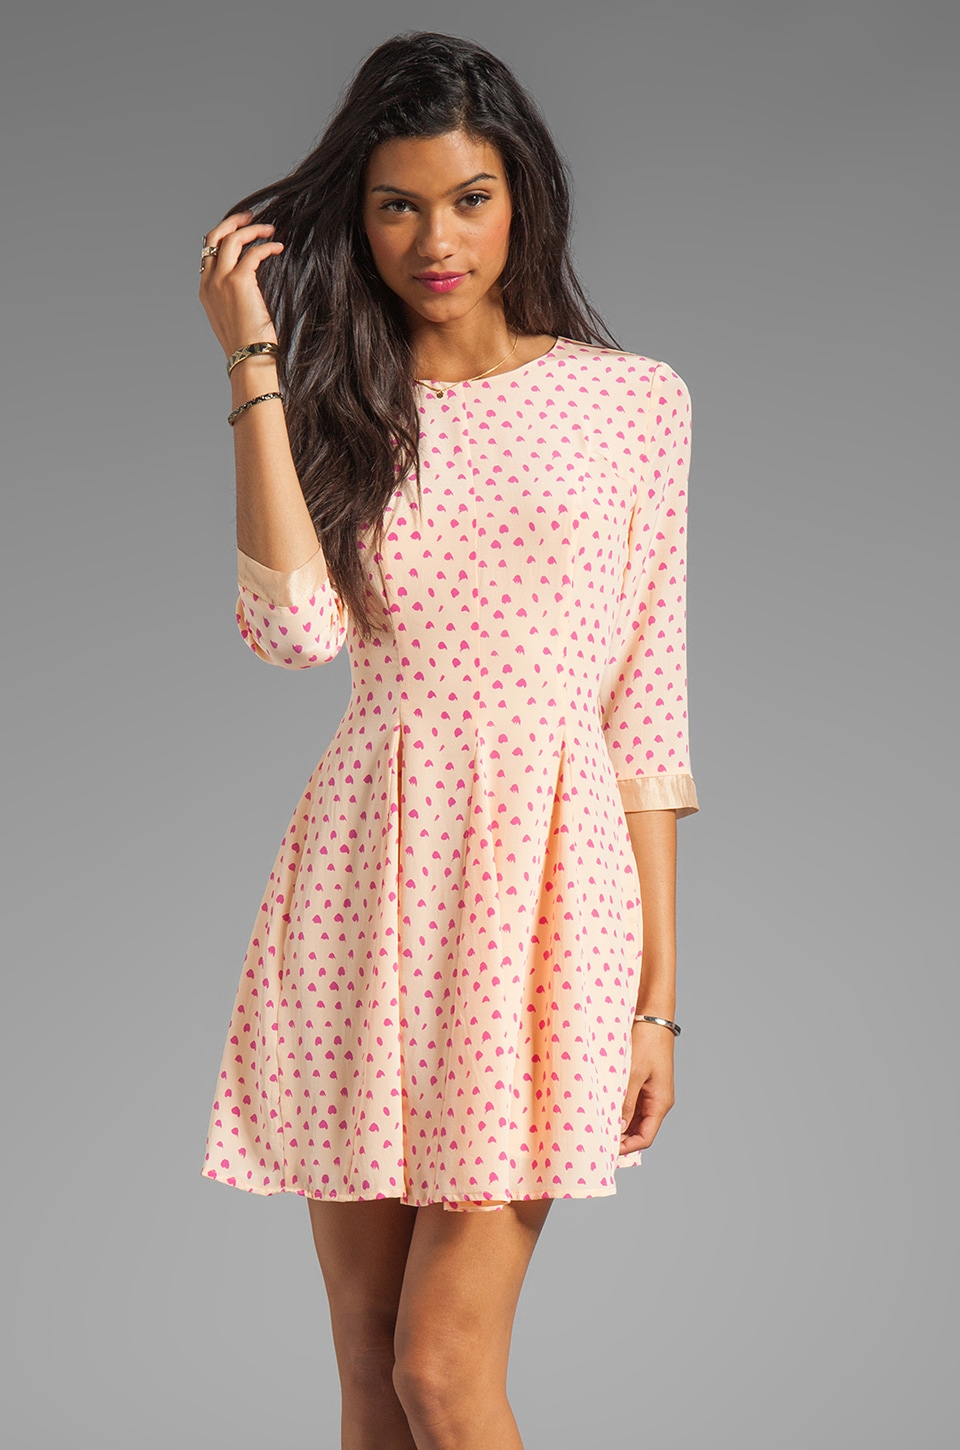 harlyn Fit & Flare Dress in Peach Dot